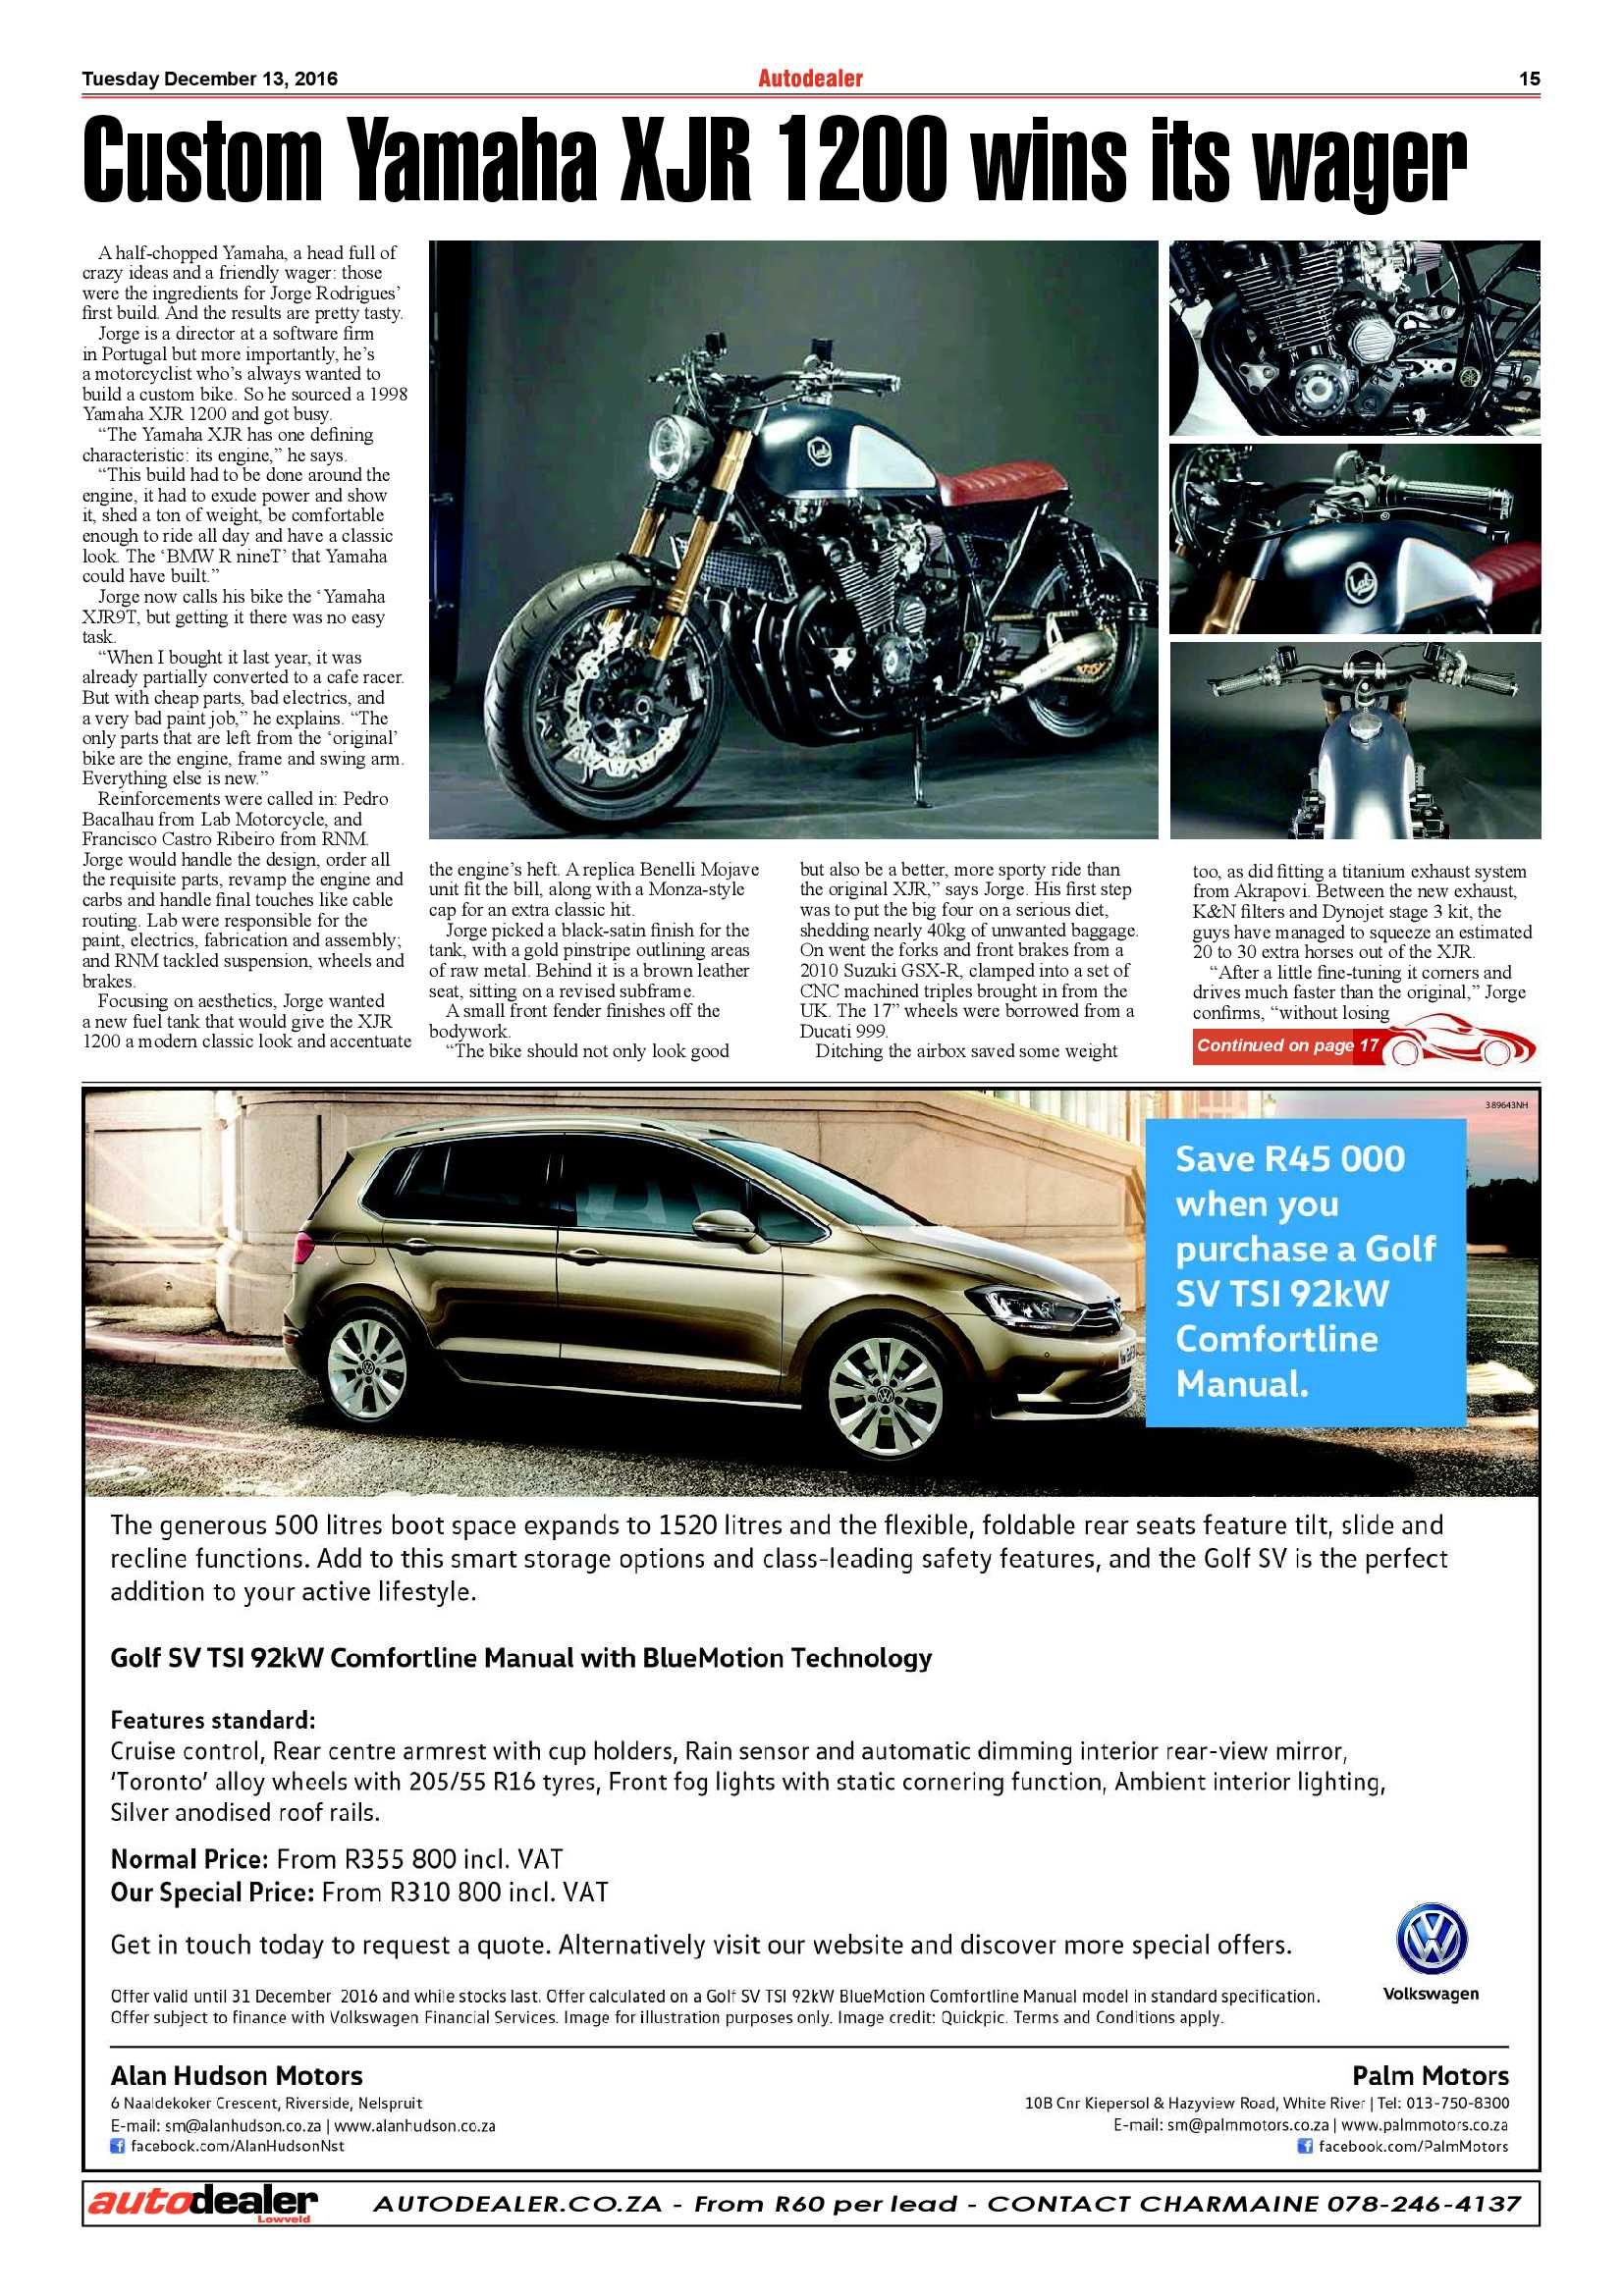 autodealer-13-december-2016-epapers-page-13